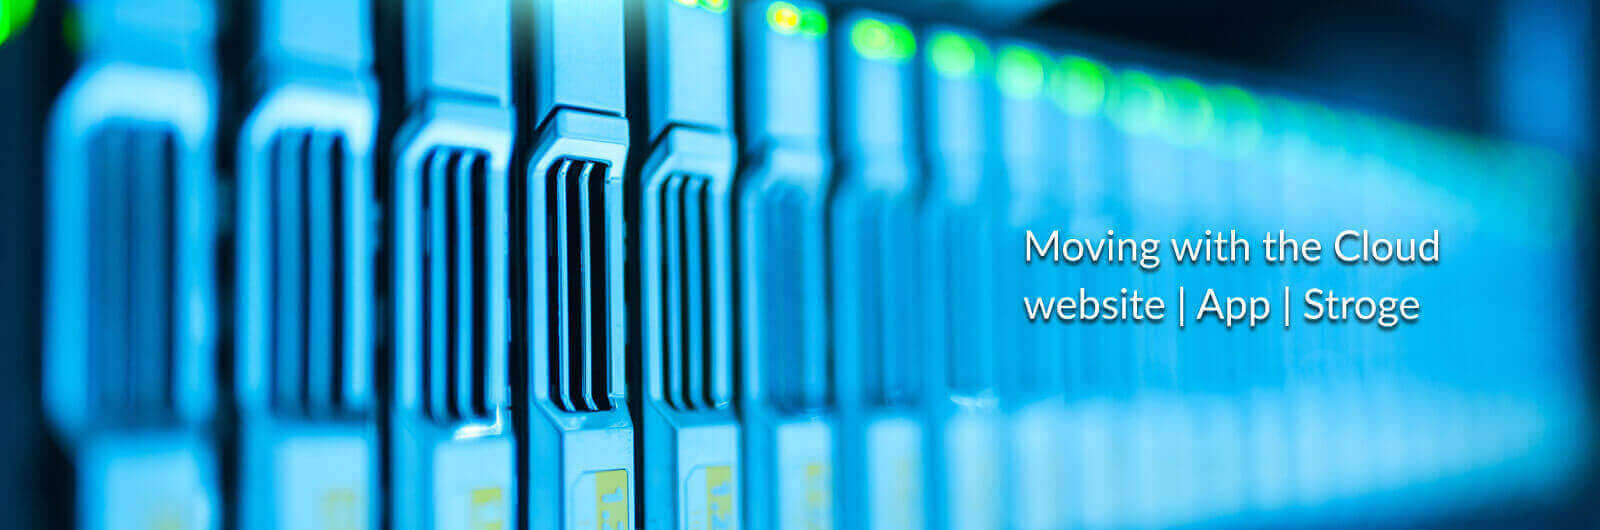 Web Solution Consulting and hosting services